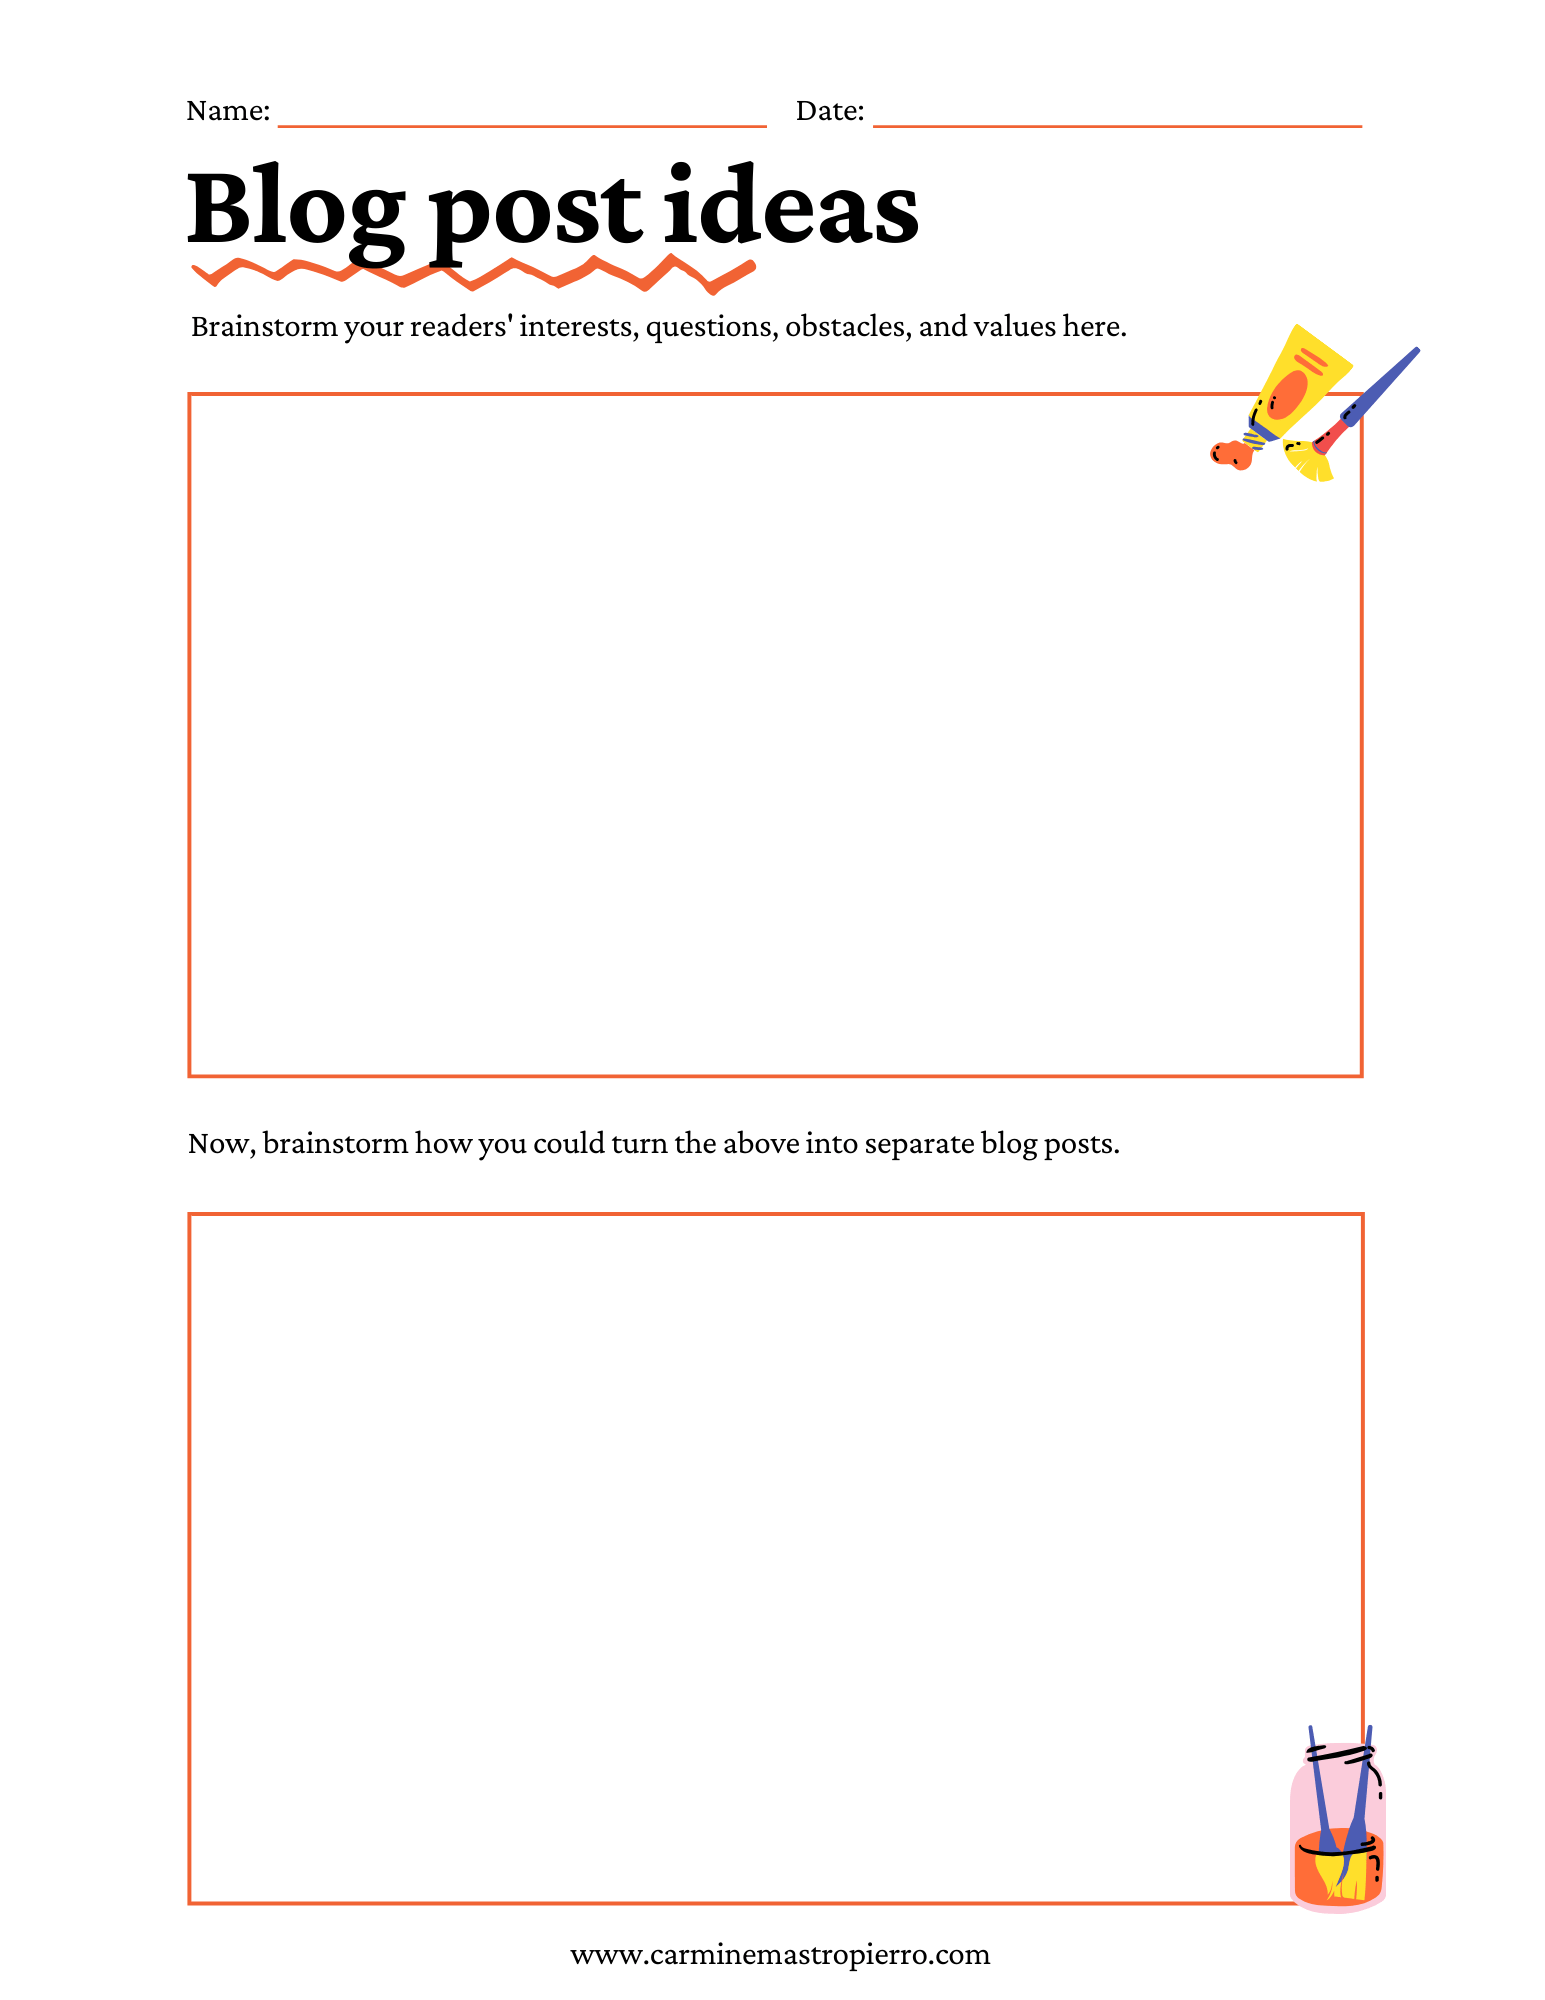 Blog post idea worksheet